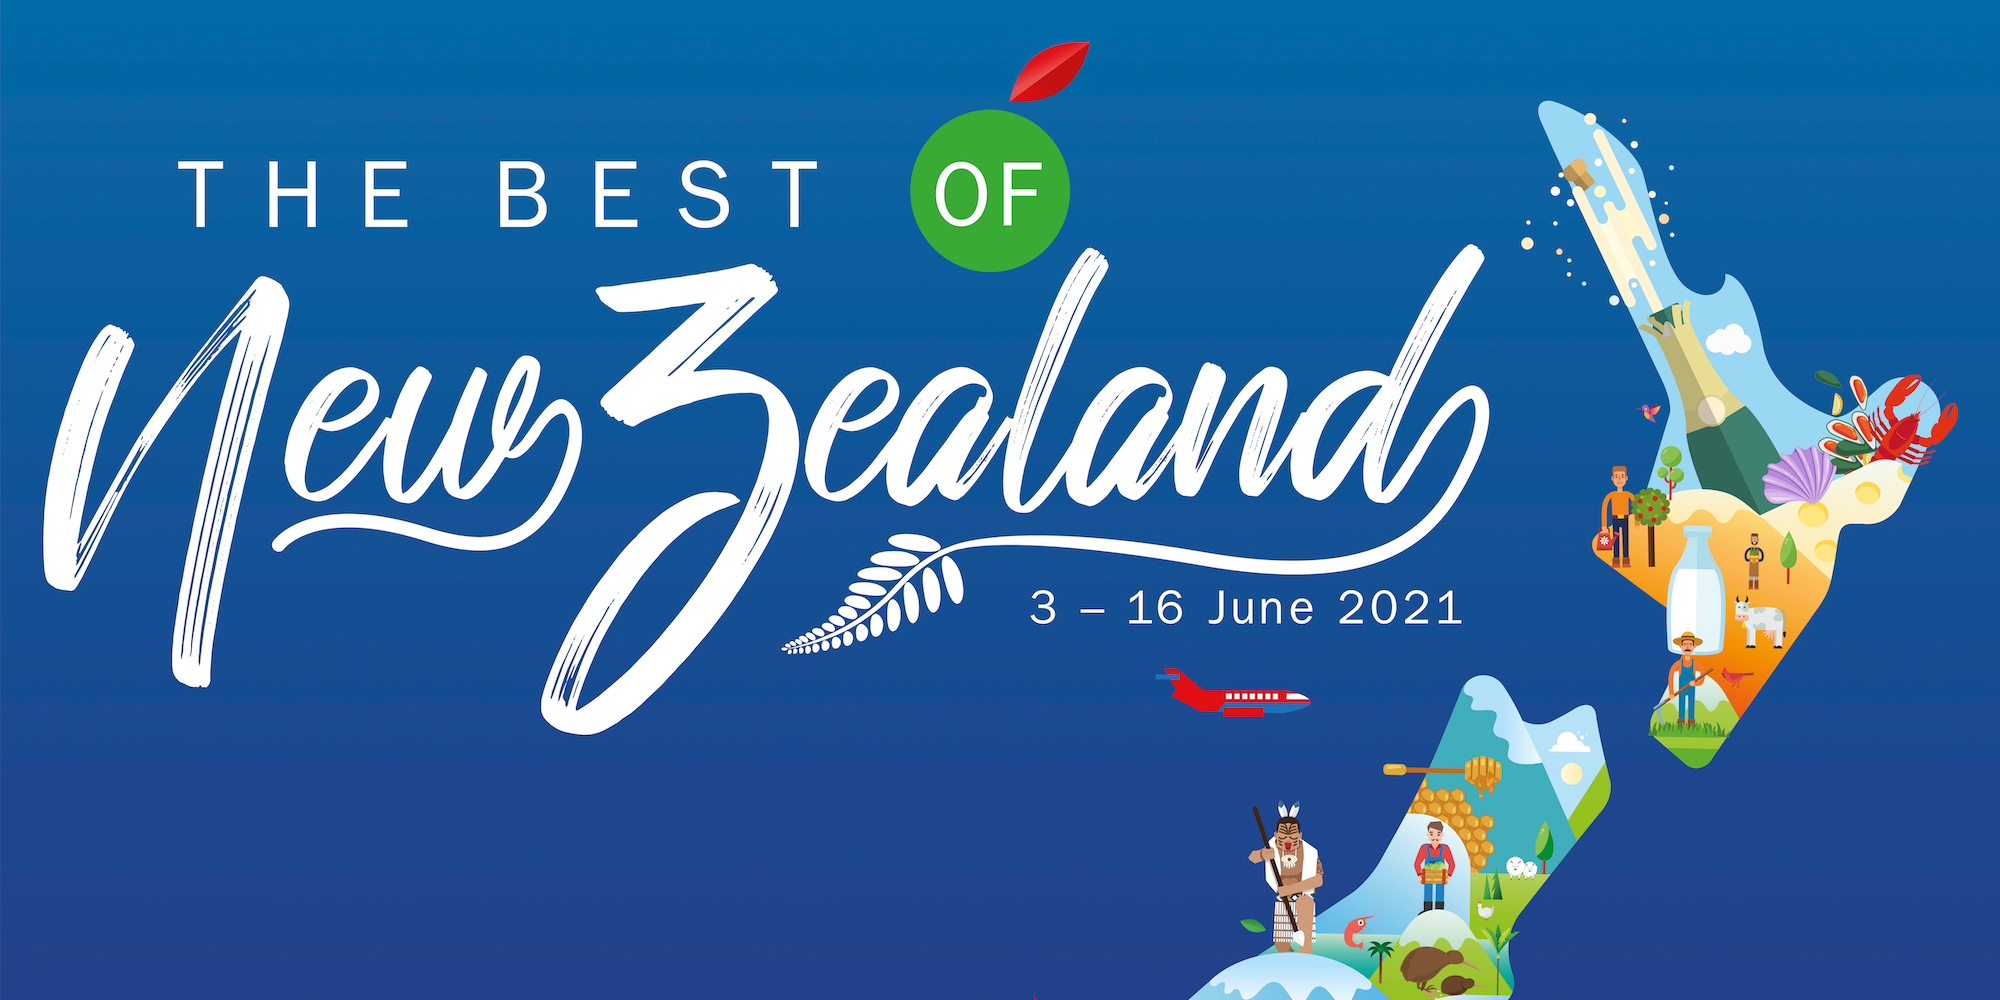 Enjoy New Zealand's finest produce at home with the Best of New Zealand Fair!